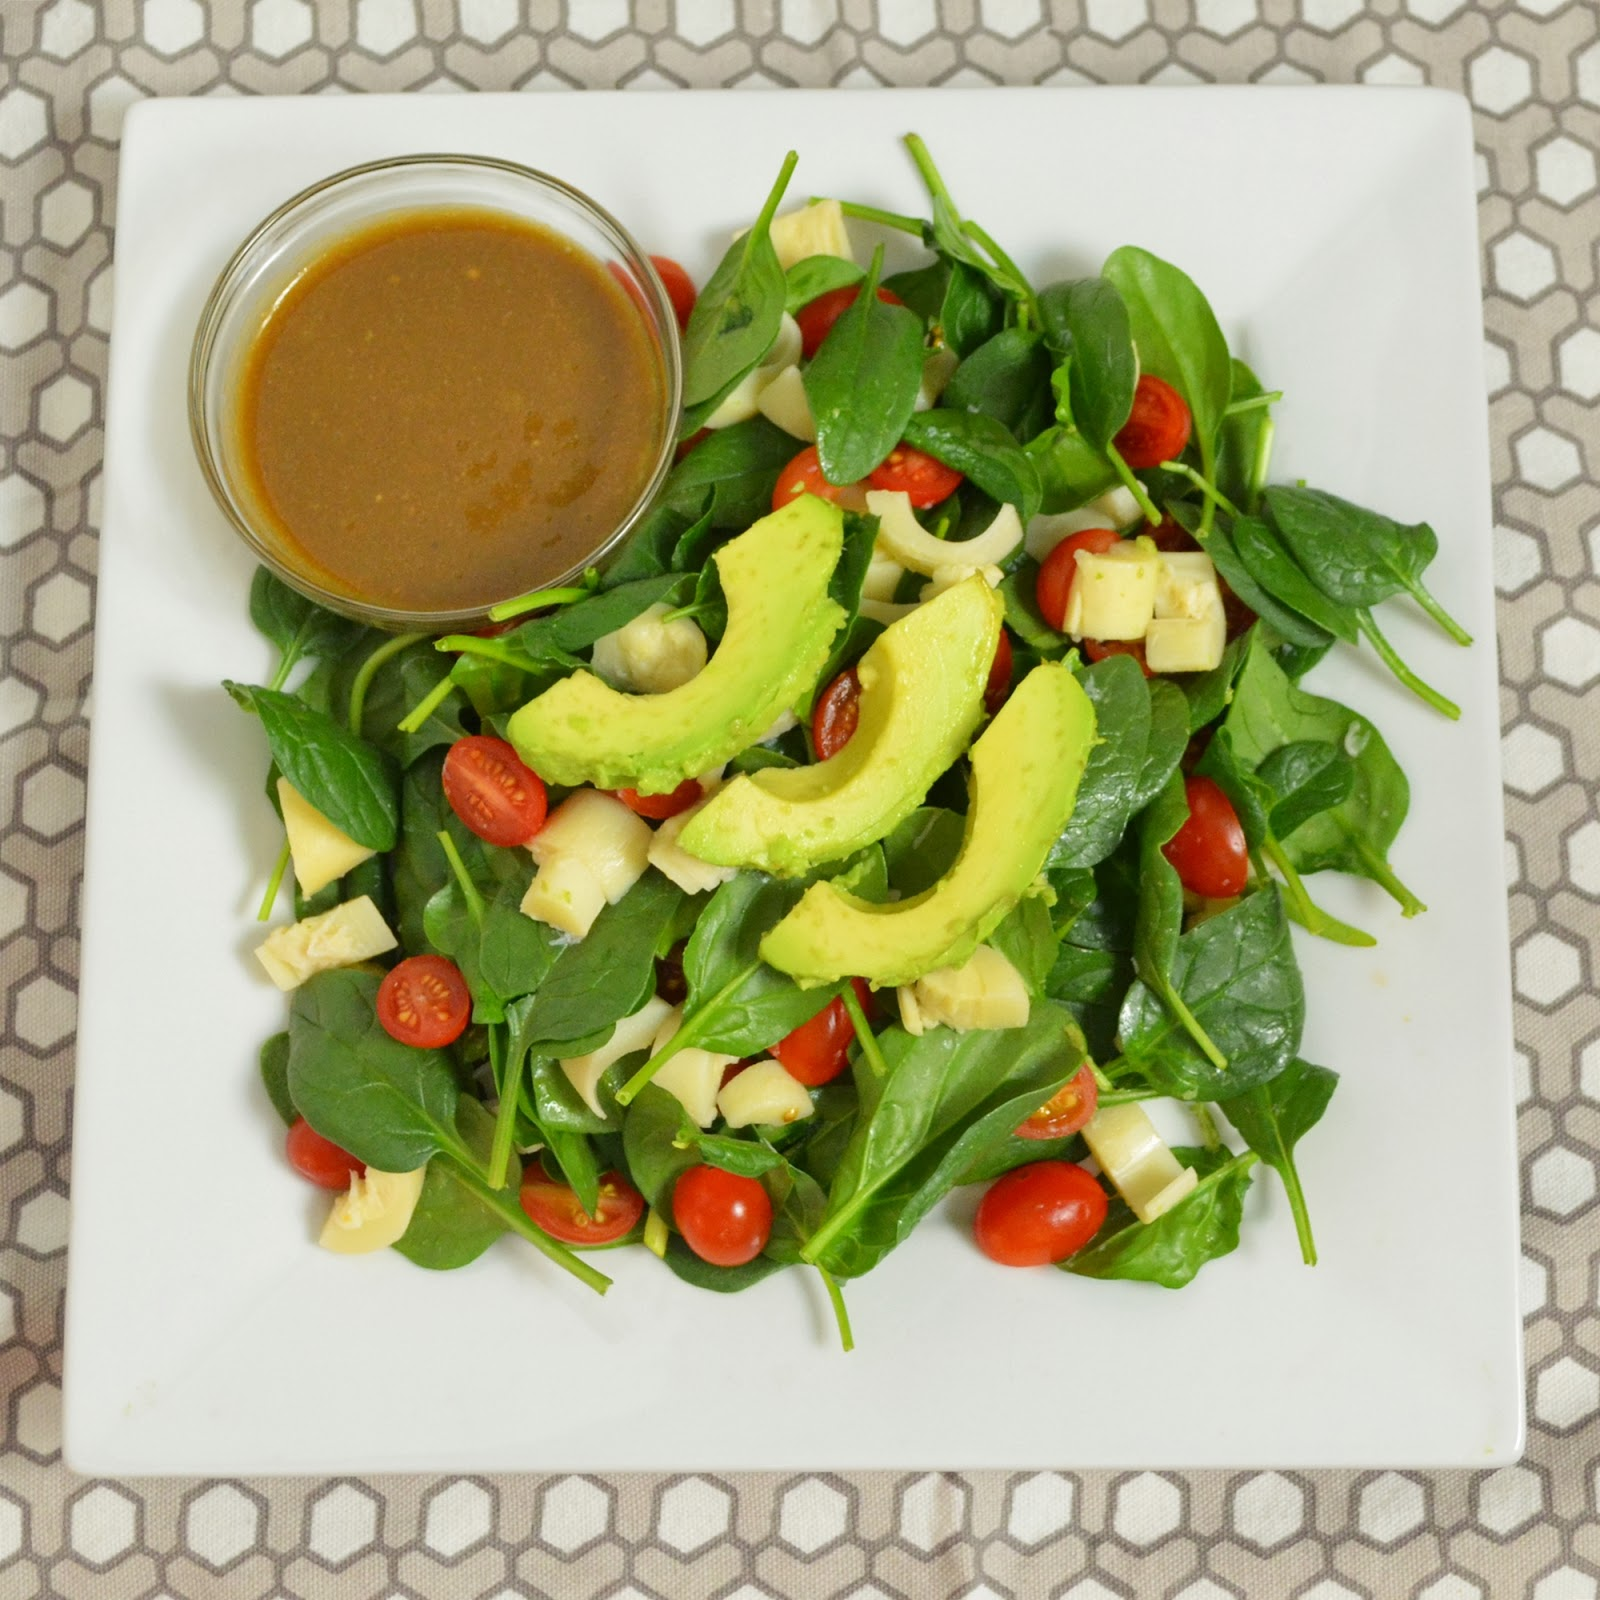 Spinach Salad with Tomatoes, Avocado, and Hearts of Palm